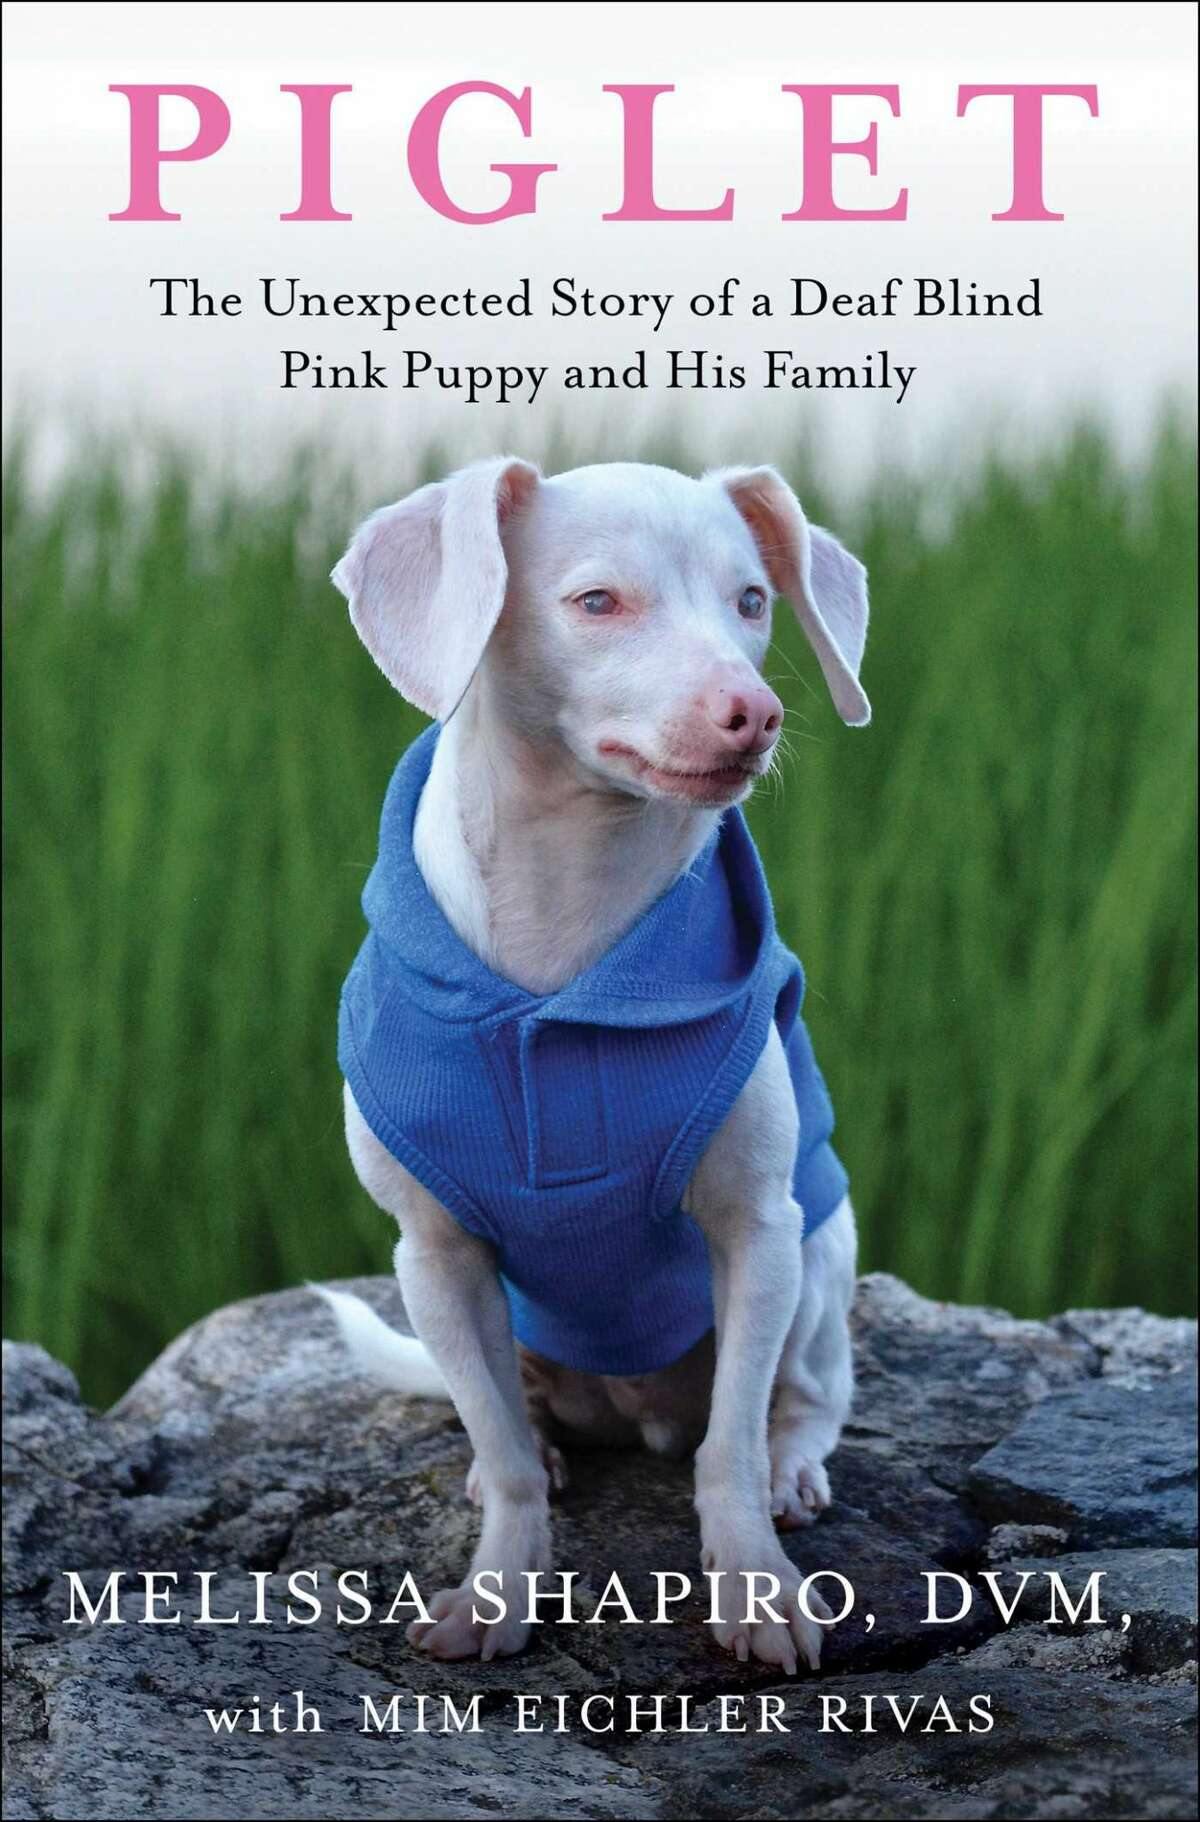 """""""Piglet, The Unexpected Story of a Deaf Blind Pink Puppy and His Family"""" will be published on Aug. 3."""